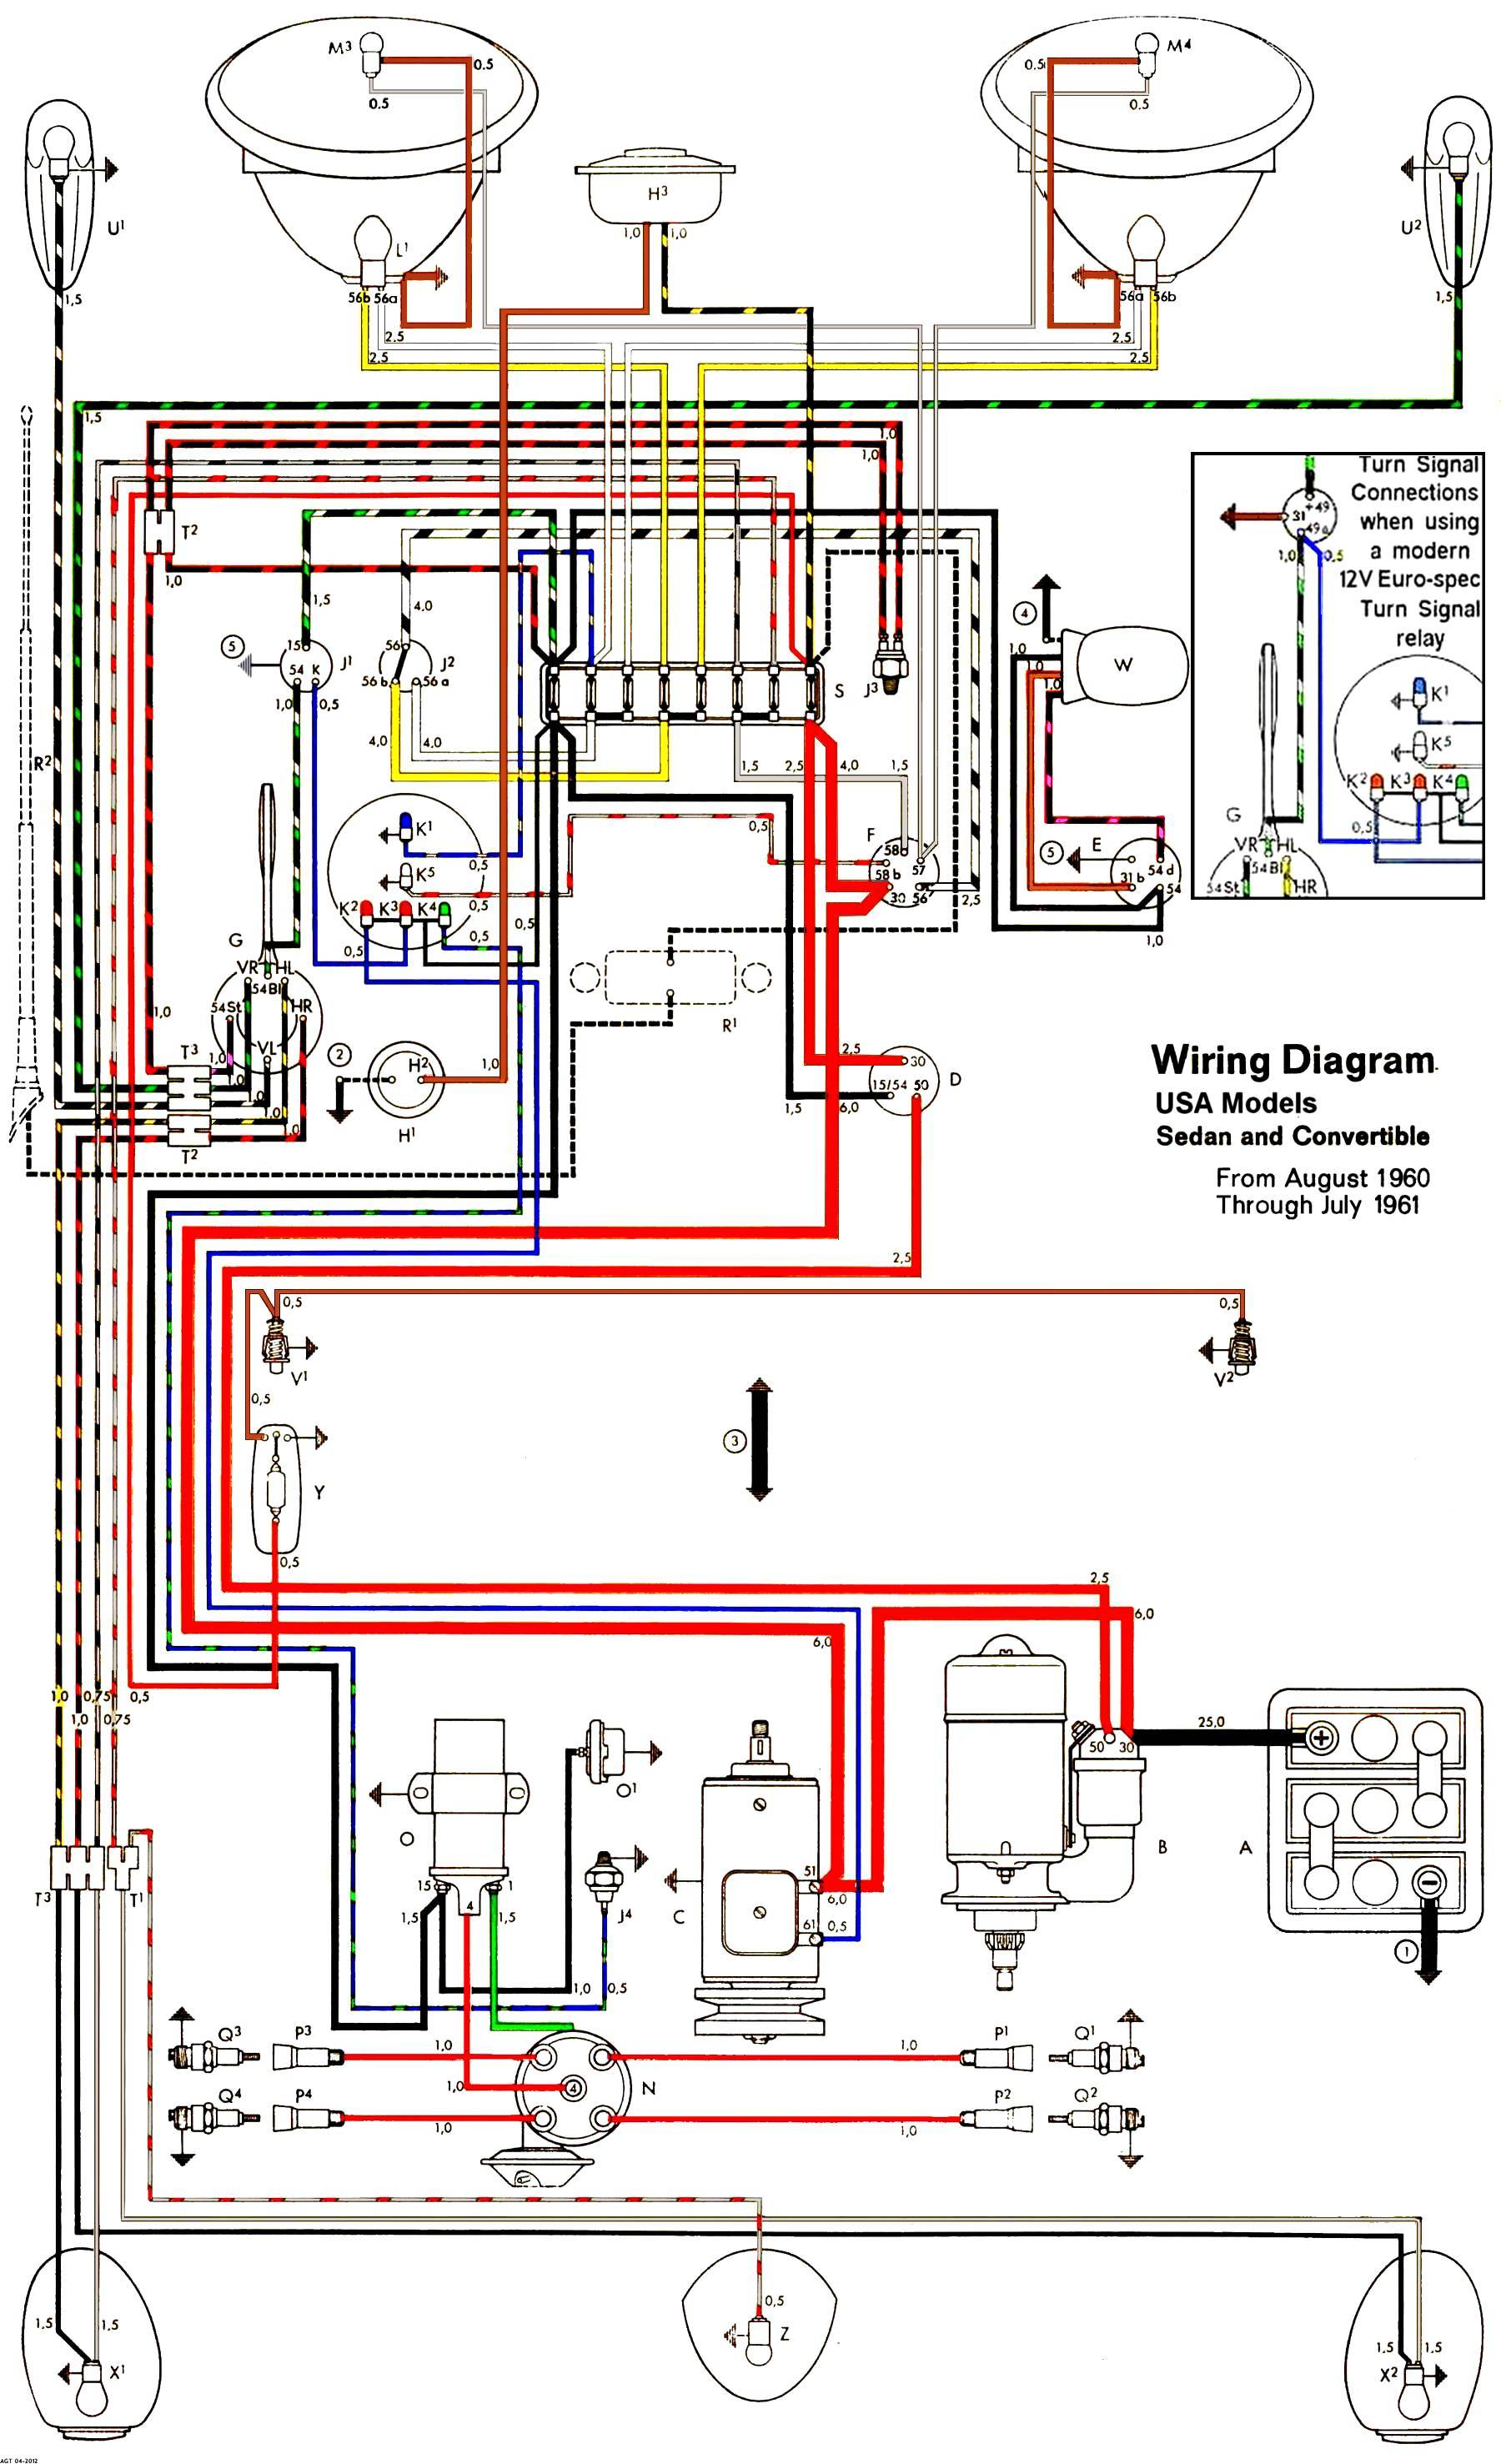 1961USA T1 thesamba com type 1 wiring diagrams Mopar Ignition Switch Wiring Diagram at readyjetset.co